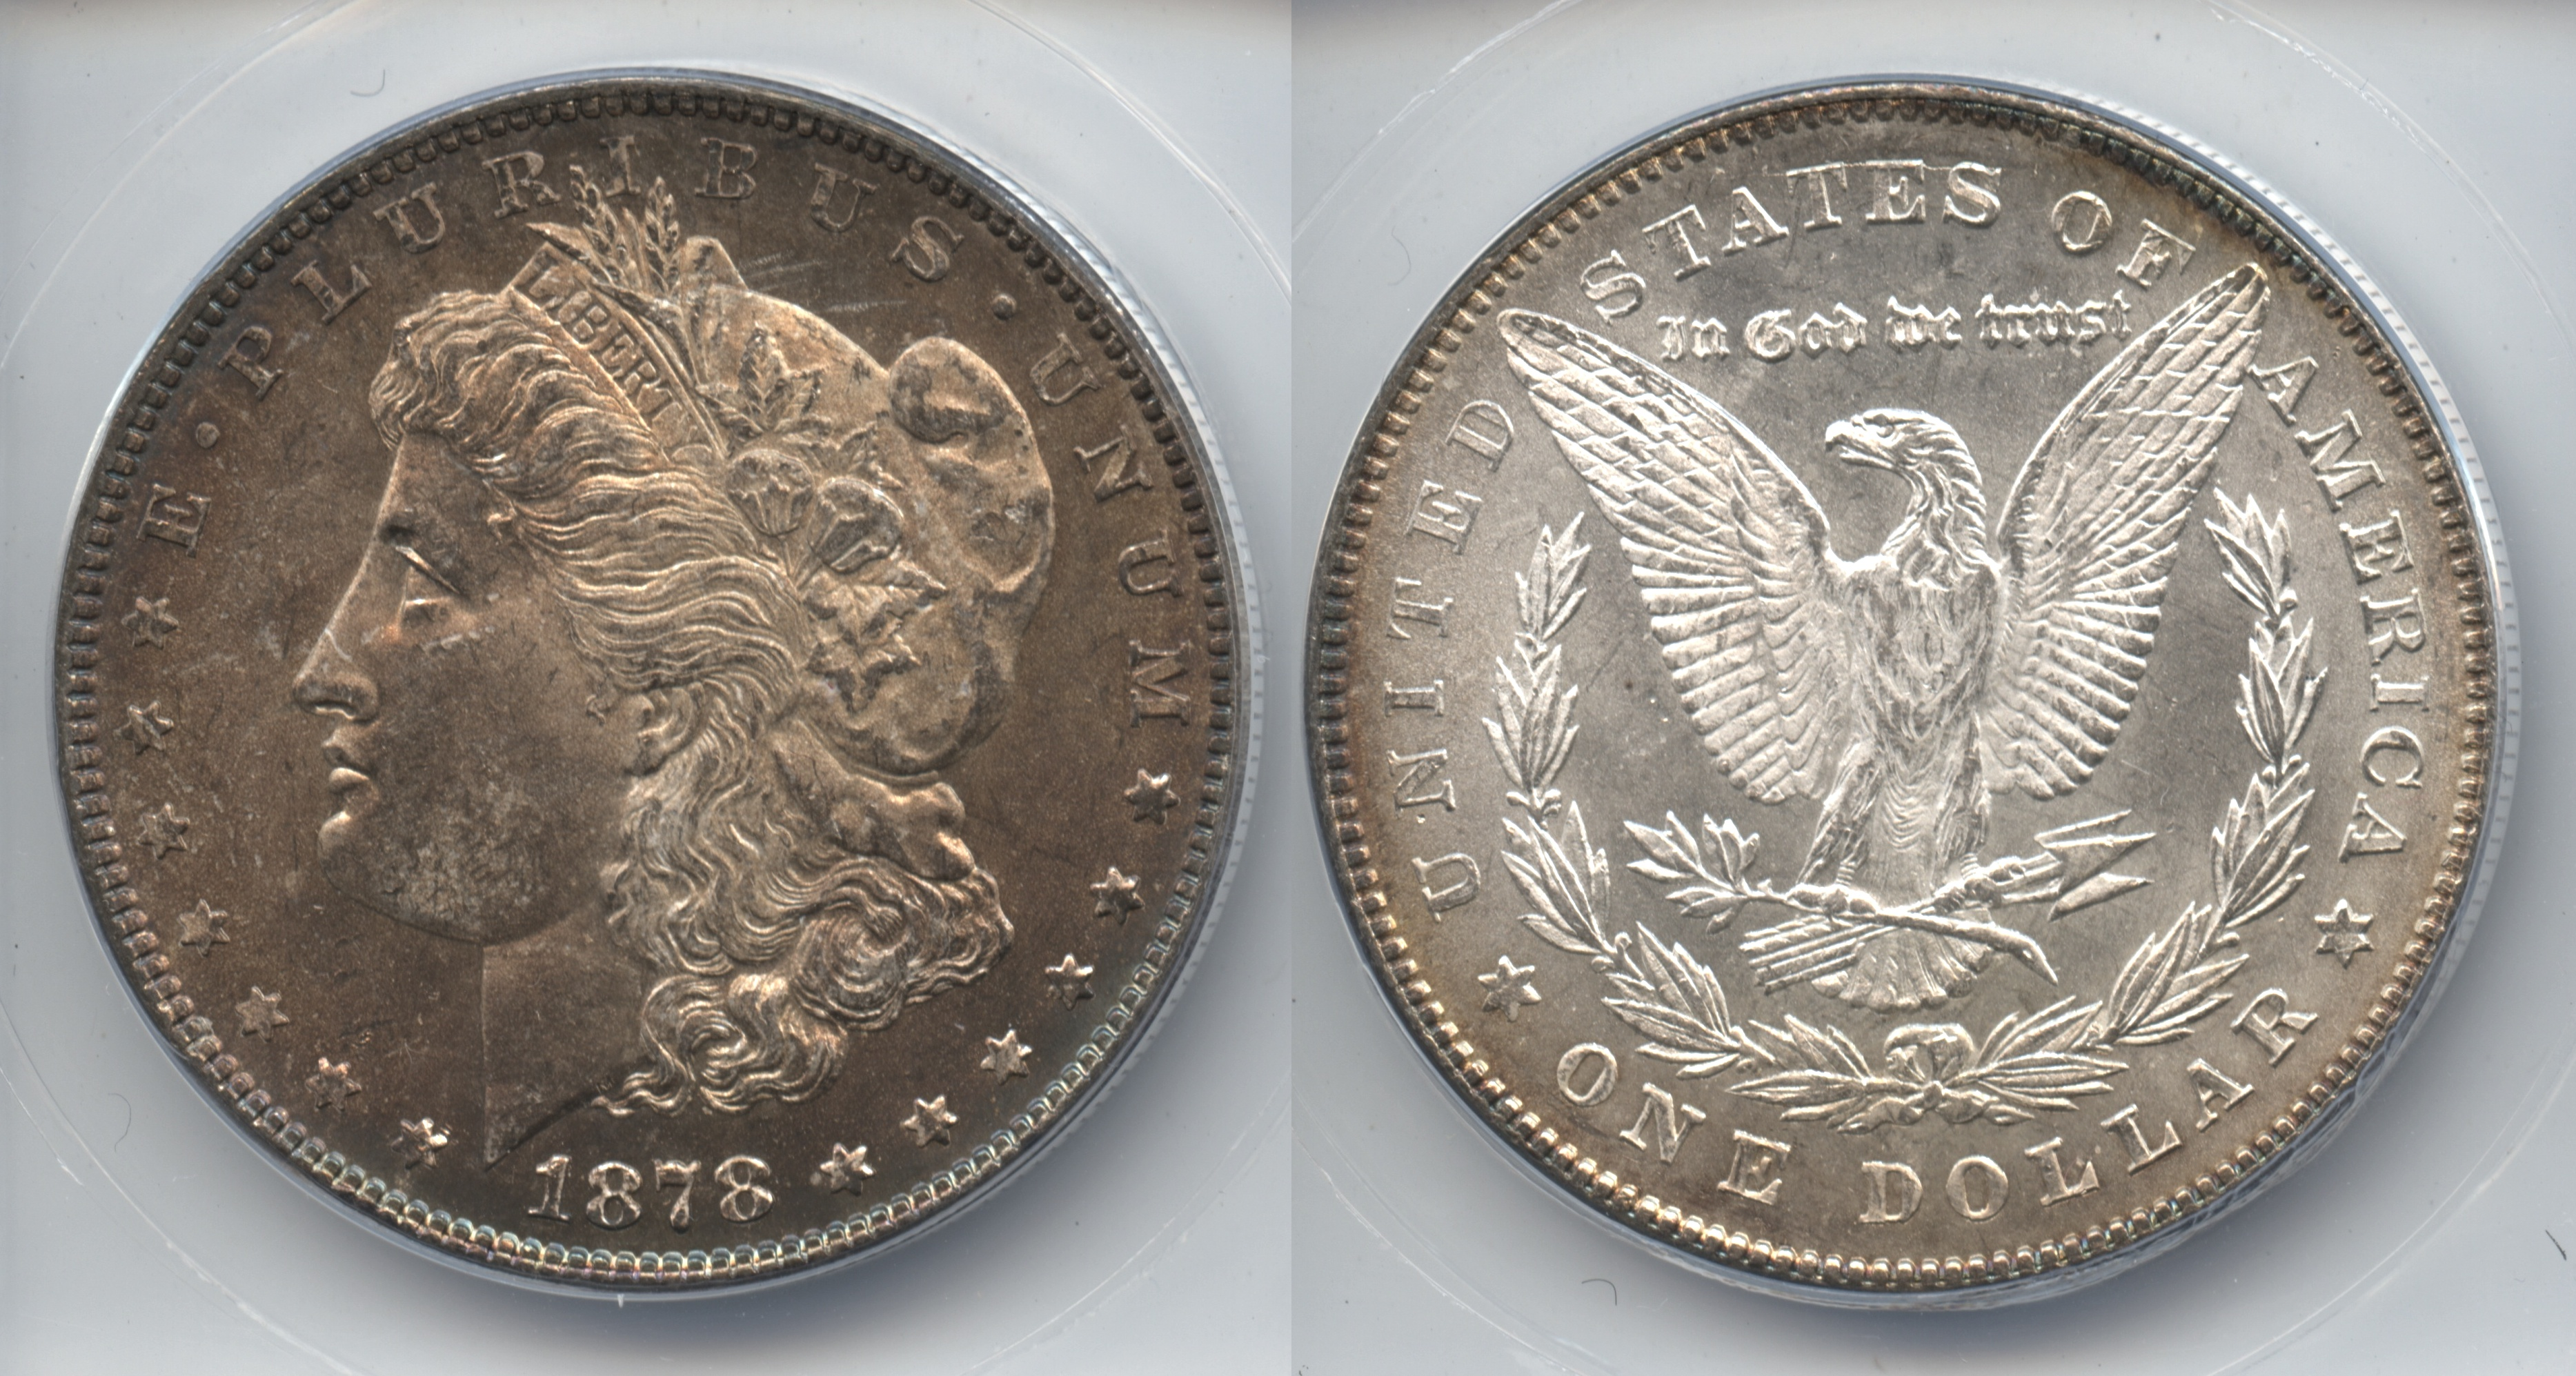 1878 7 Tailfeathers Morgan Silver Dollar ANACS MS-65